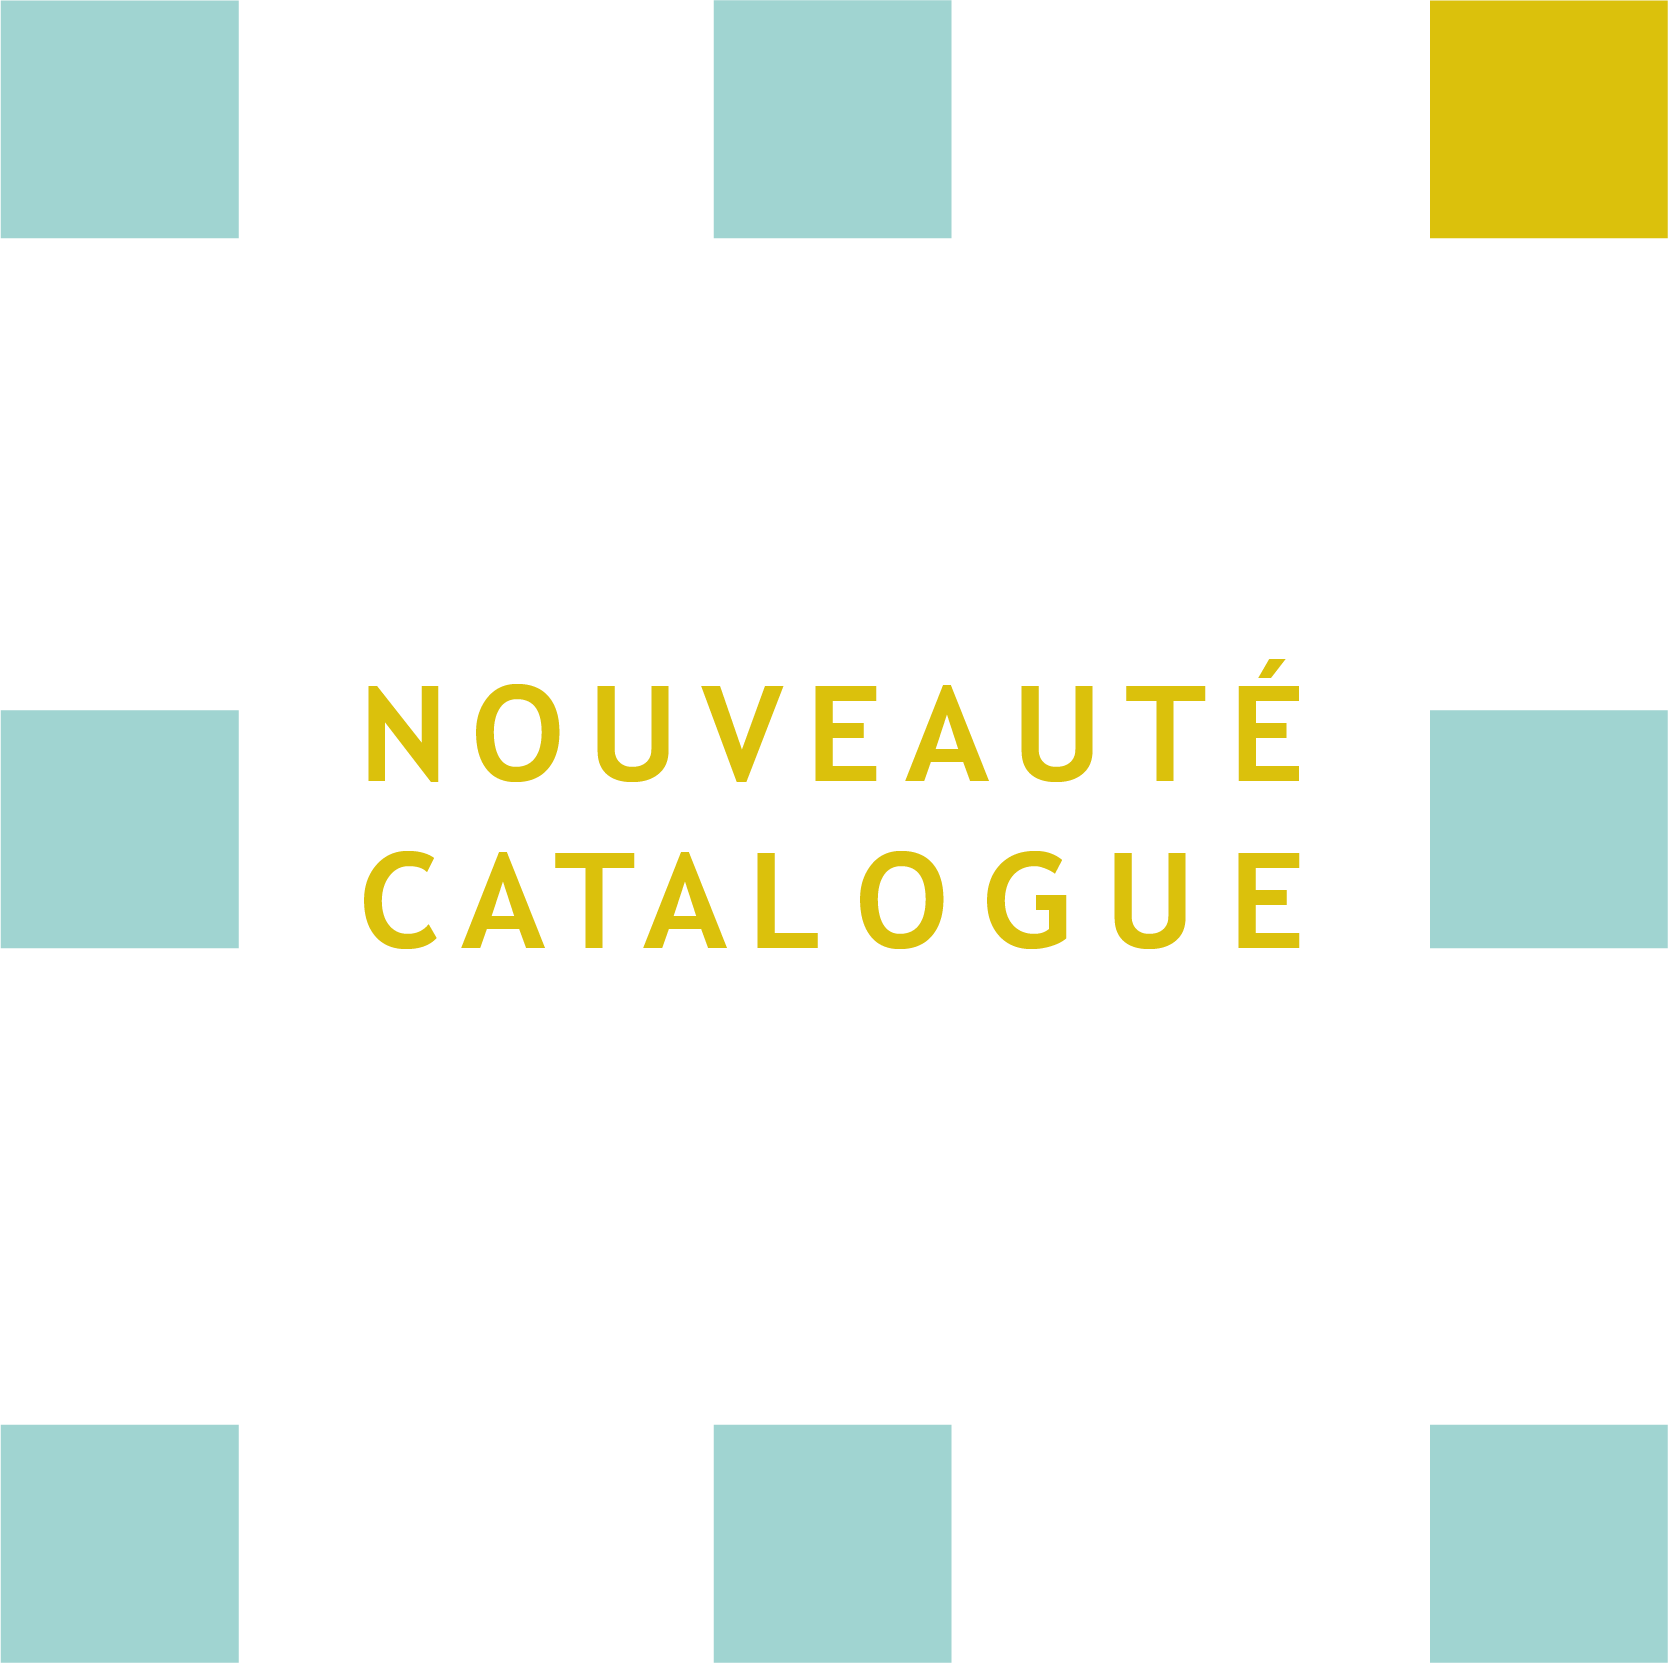 Nouveayté catalogue